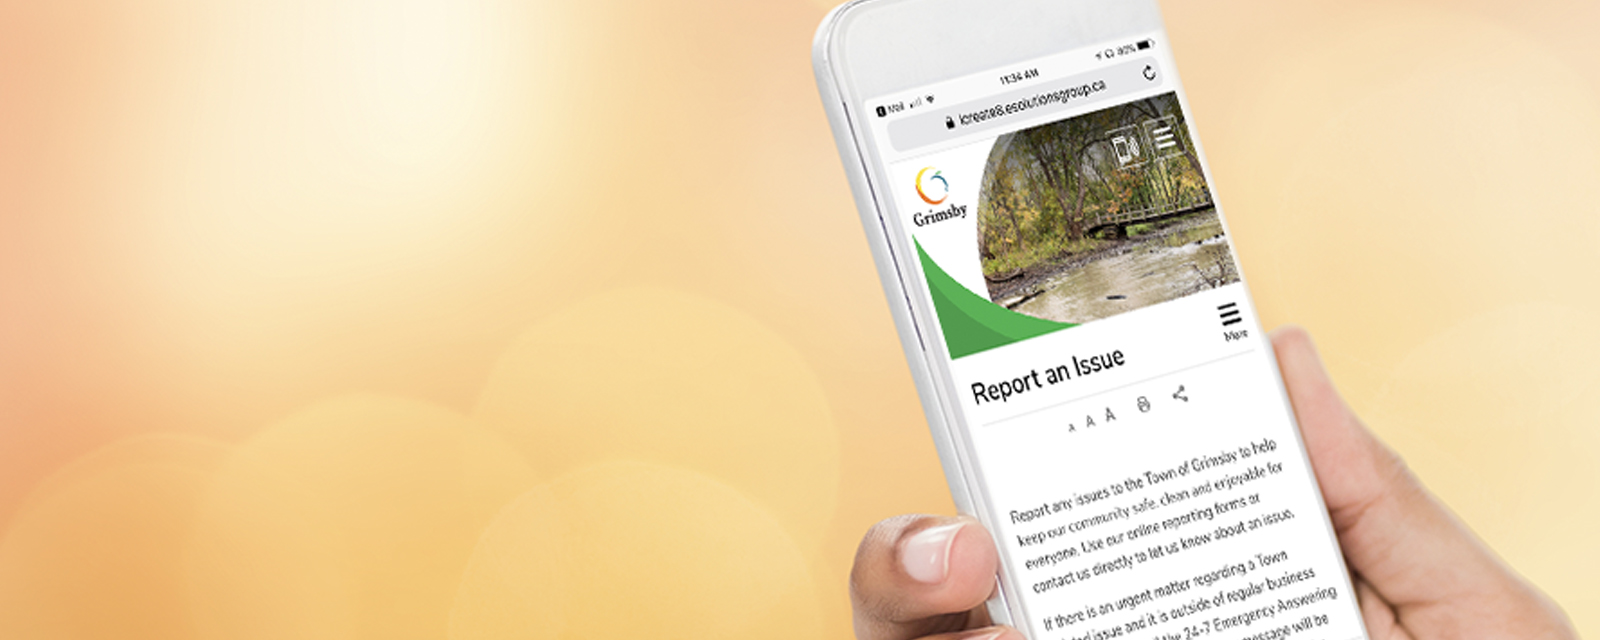 report an issue site on a cell phone